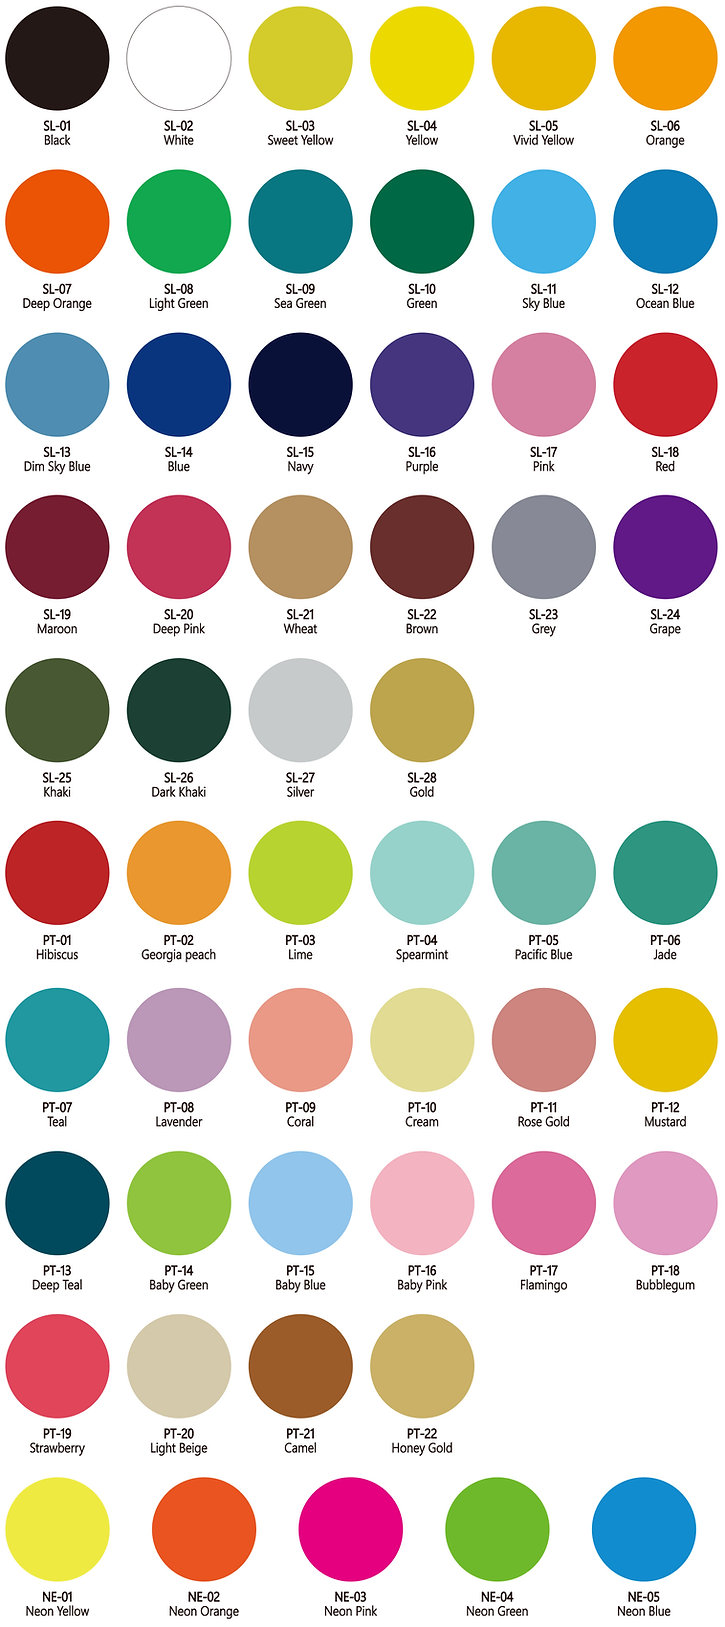 soft pu-color chart.jpg